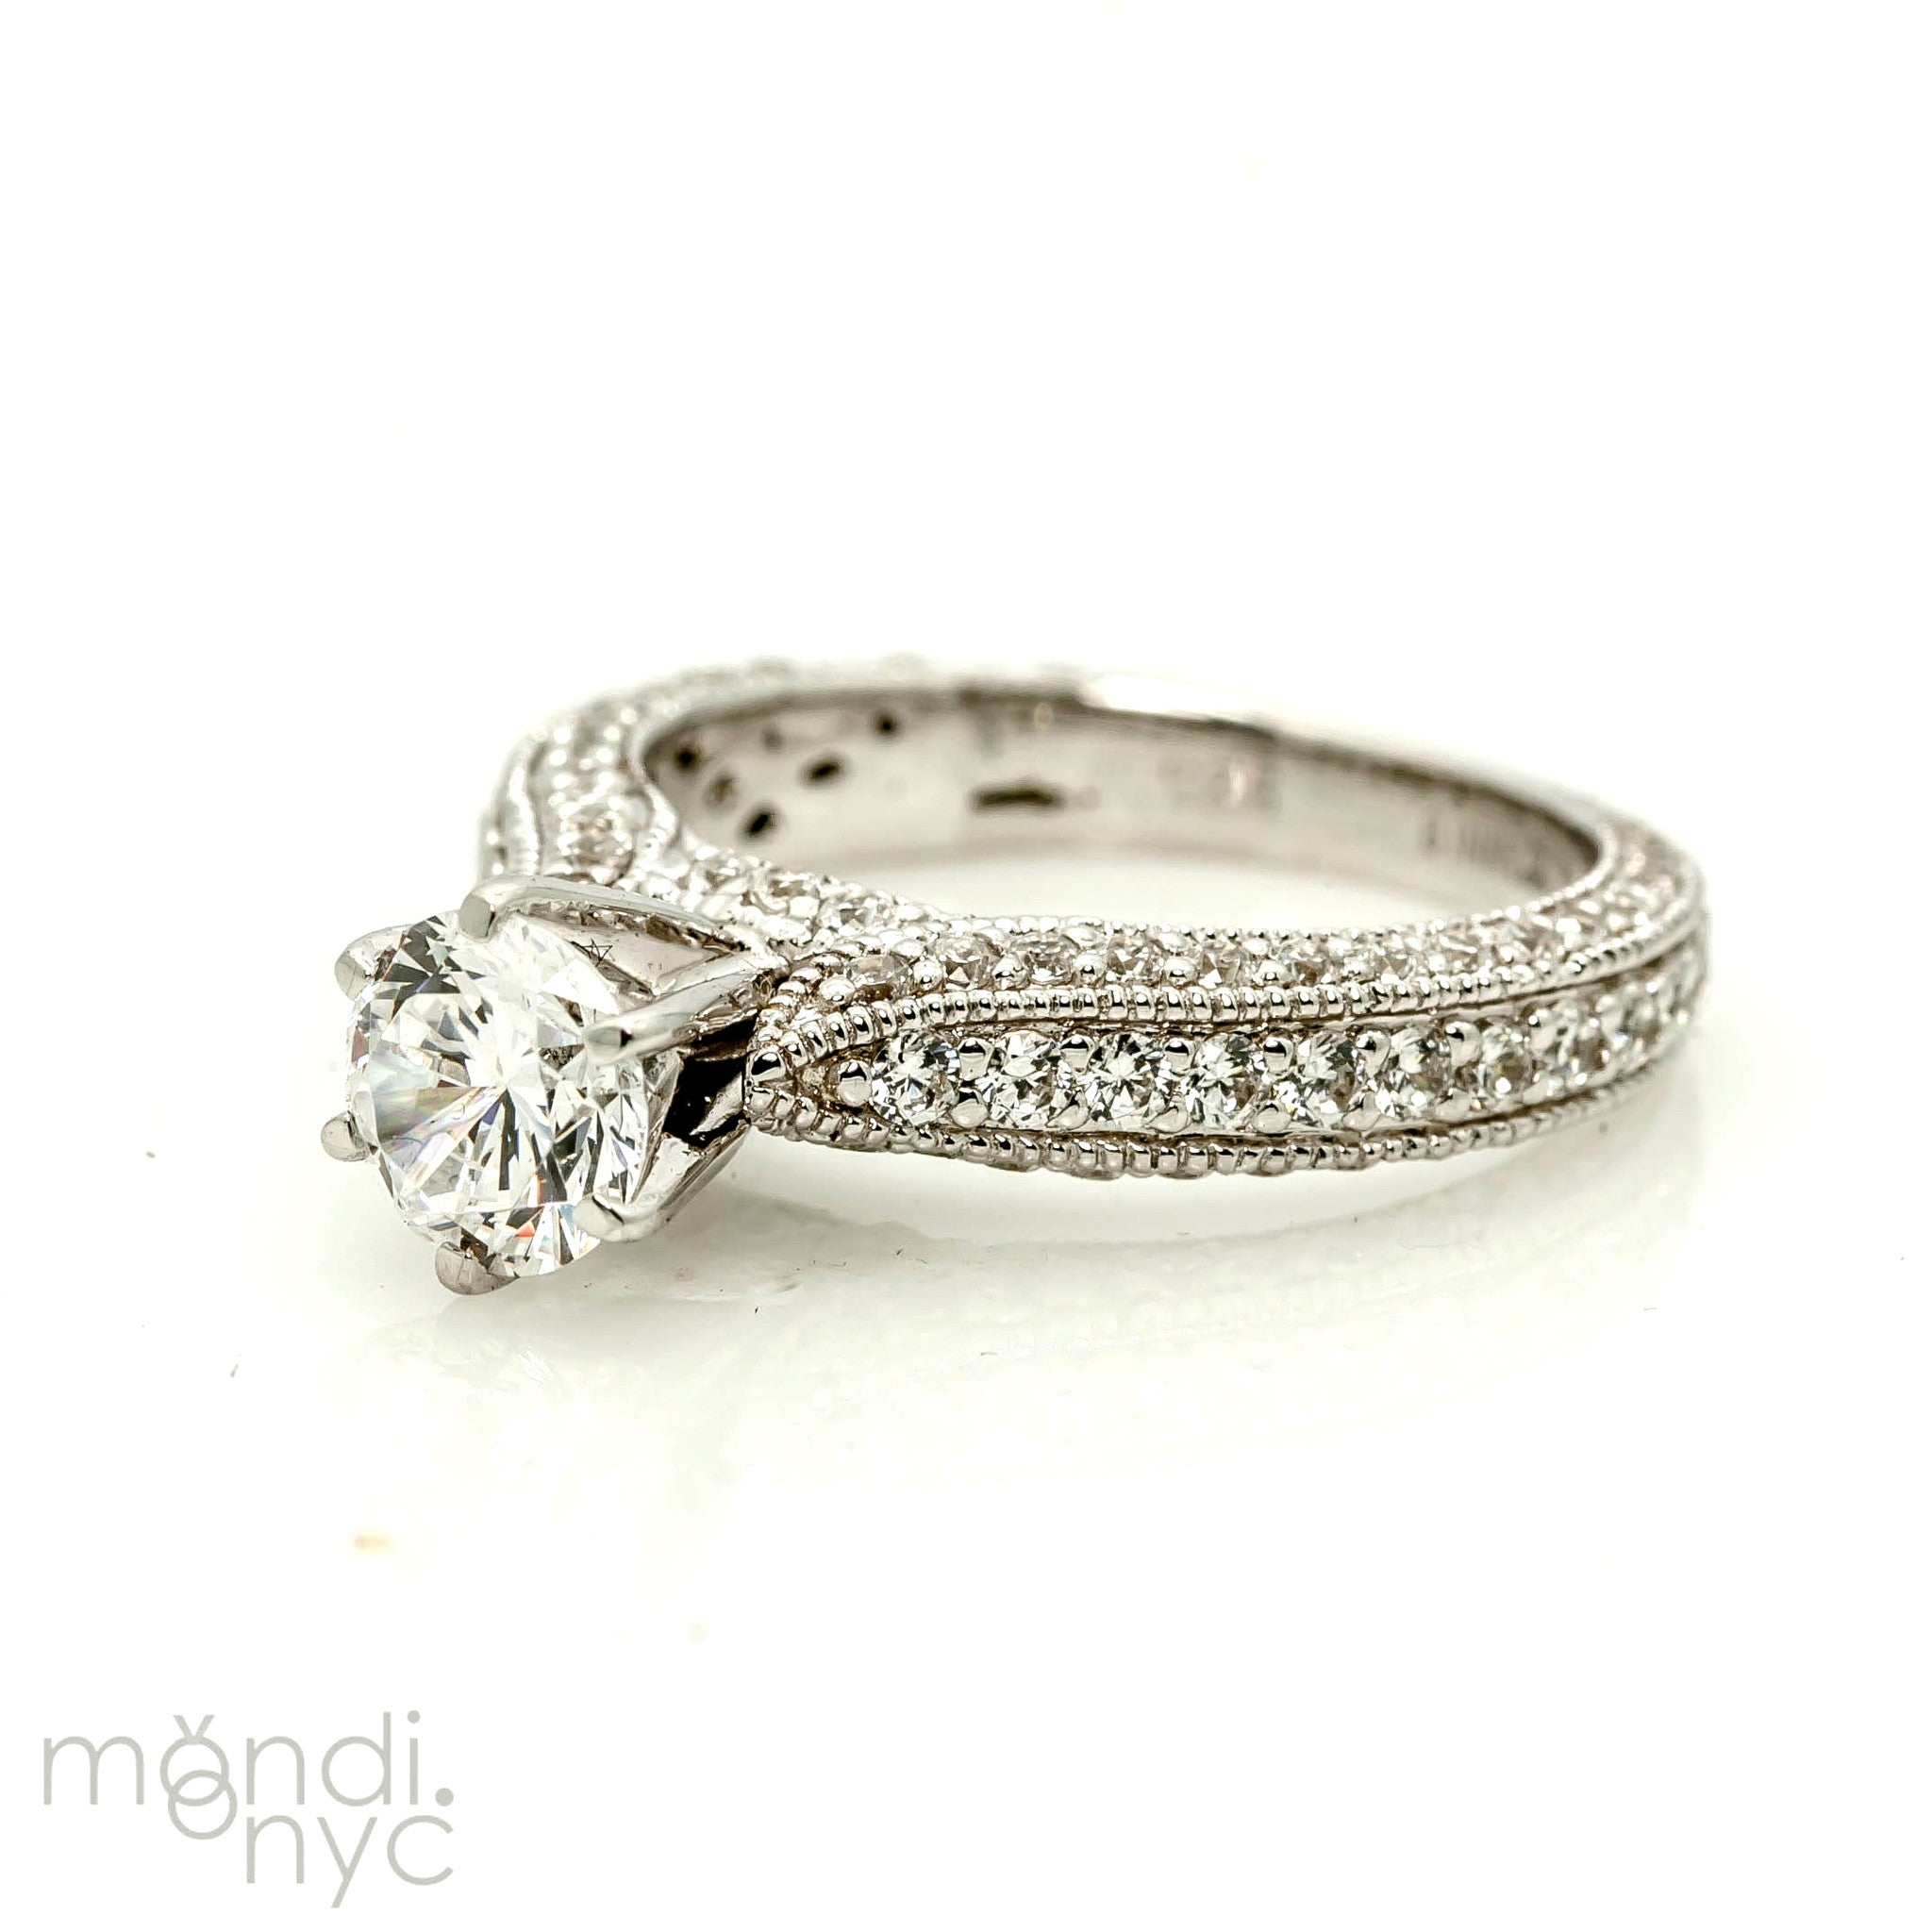 Semi Mount, Art Deco Style Engagement Ring, For 1 Carat Center Stone, With 1.07 Carat Of Diamonds, Anniversary Ring - Y11302